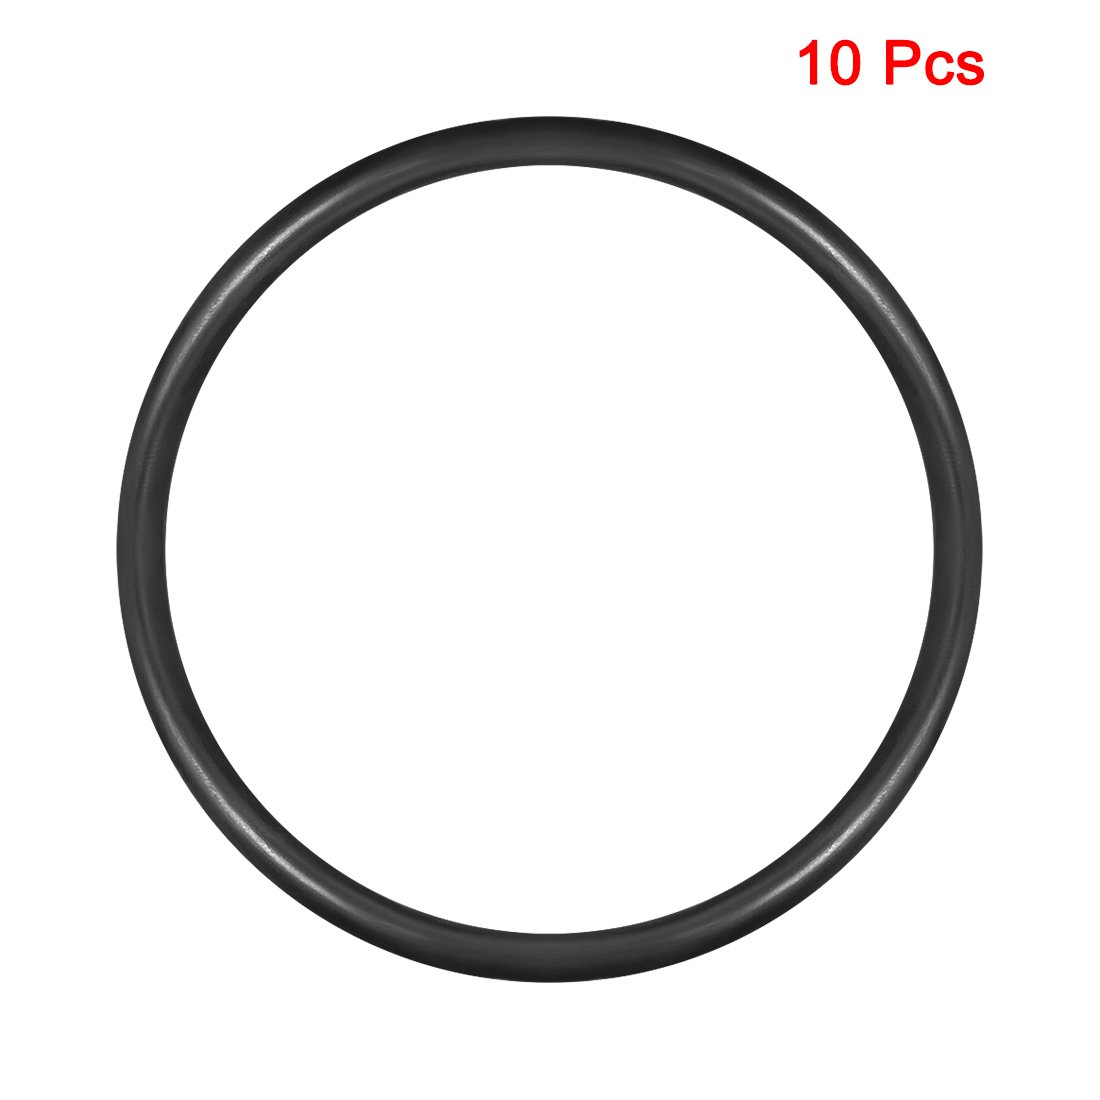 23mm Inner Diameter 3.5mm Width Round Seal Gasket Pack of 50 uxcell O-Rings Nitrile Rubber 30mm OD